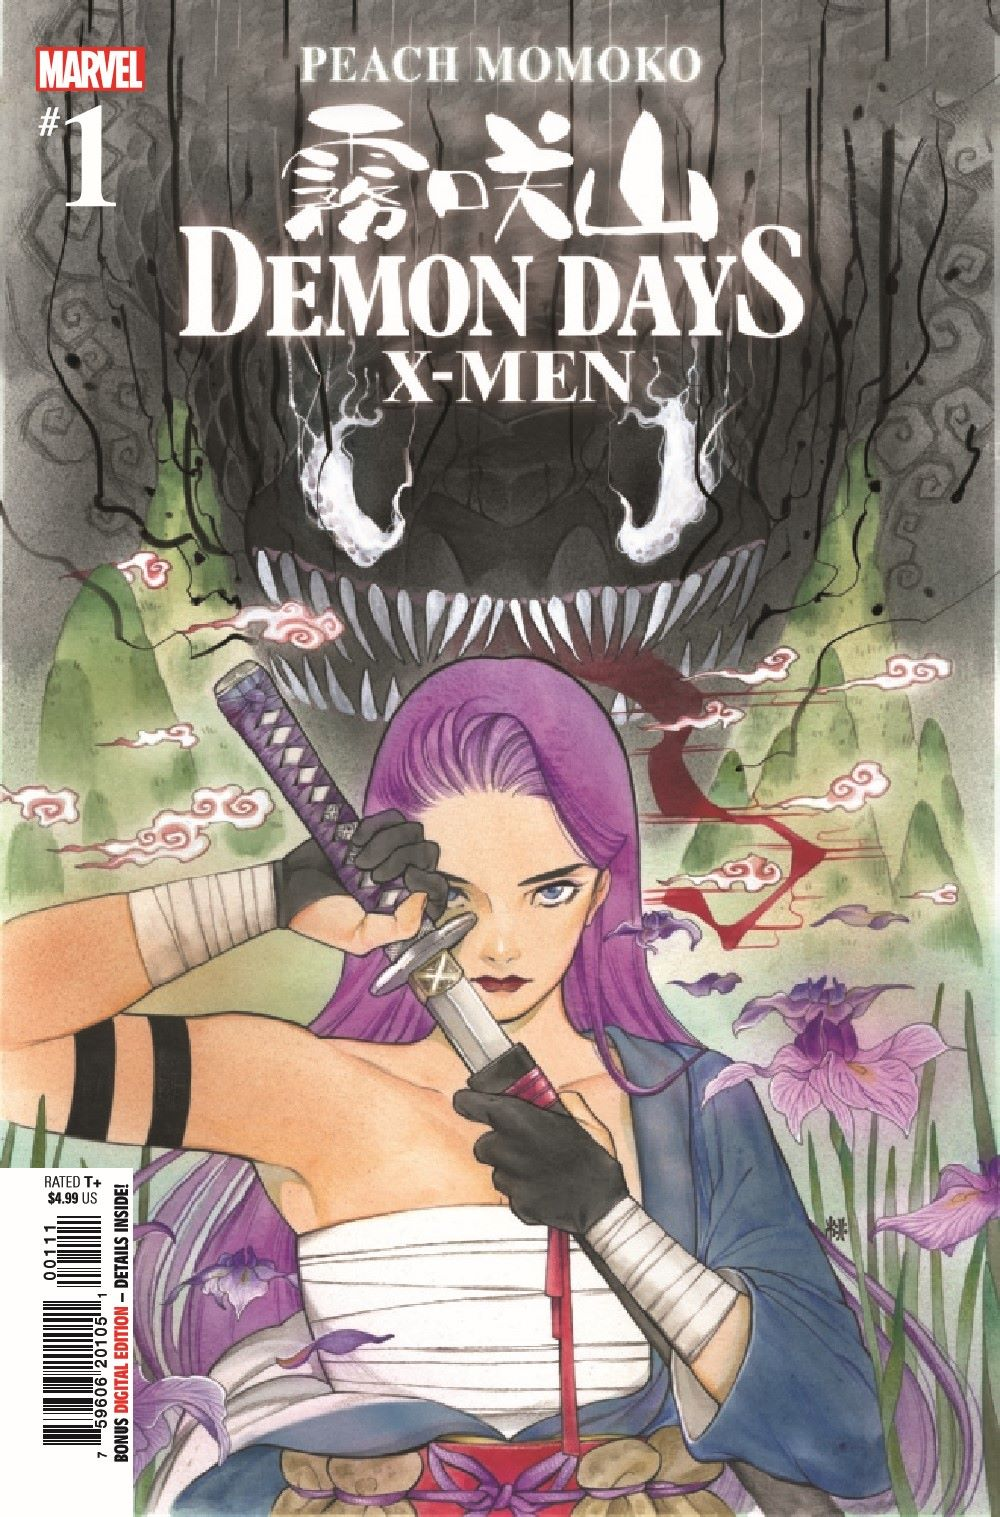 DEMONDAYSXMEN2021001_Preview-1 ComicList Previews: DEMON DAYS X-MEN #1